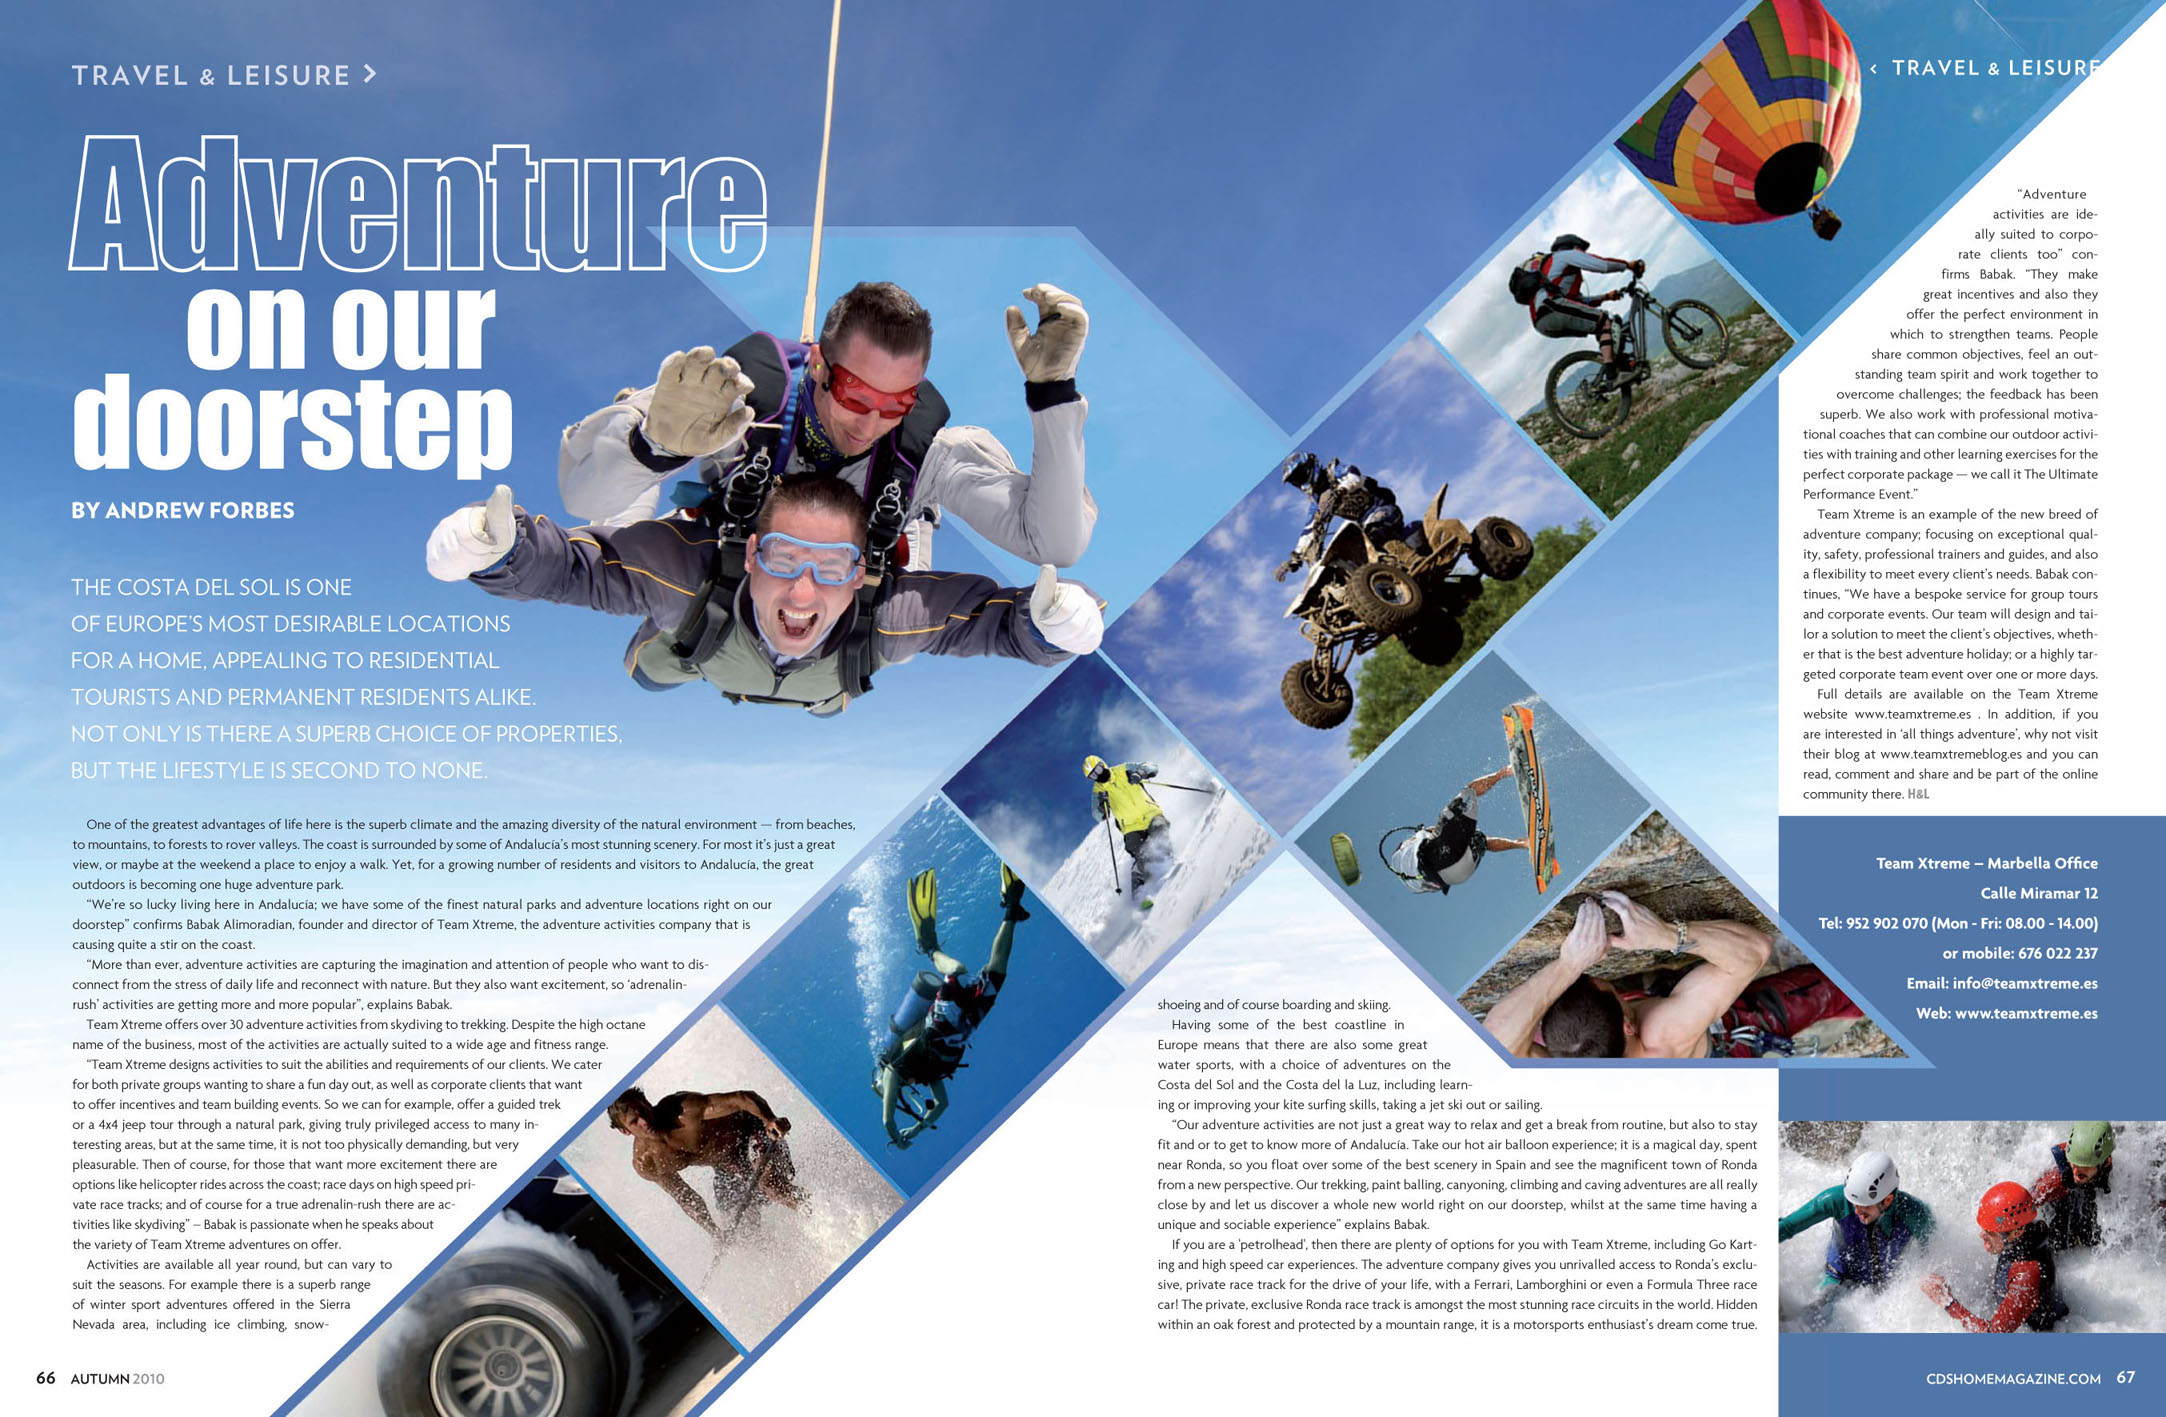 Adventure activities in Andalucia by Andrew Forbes